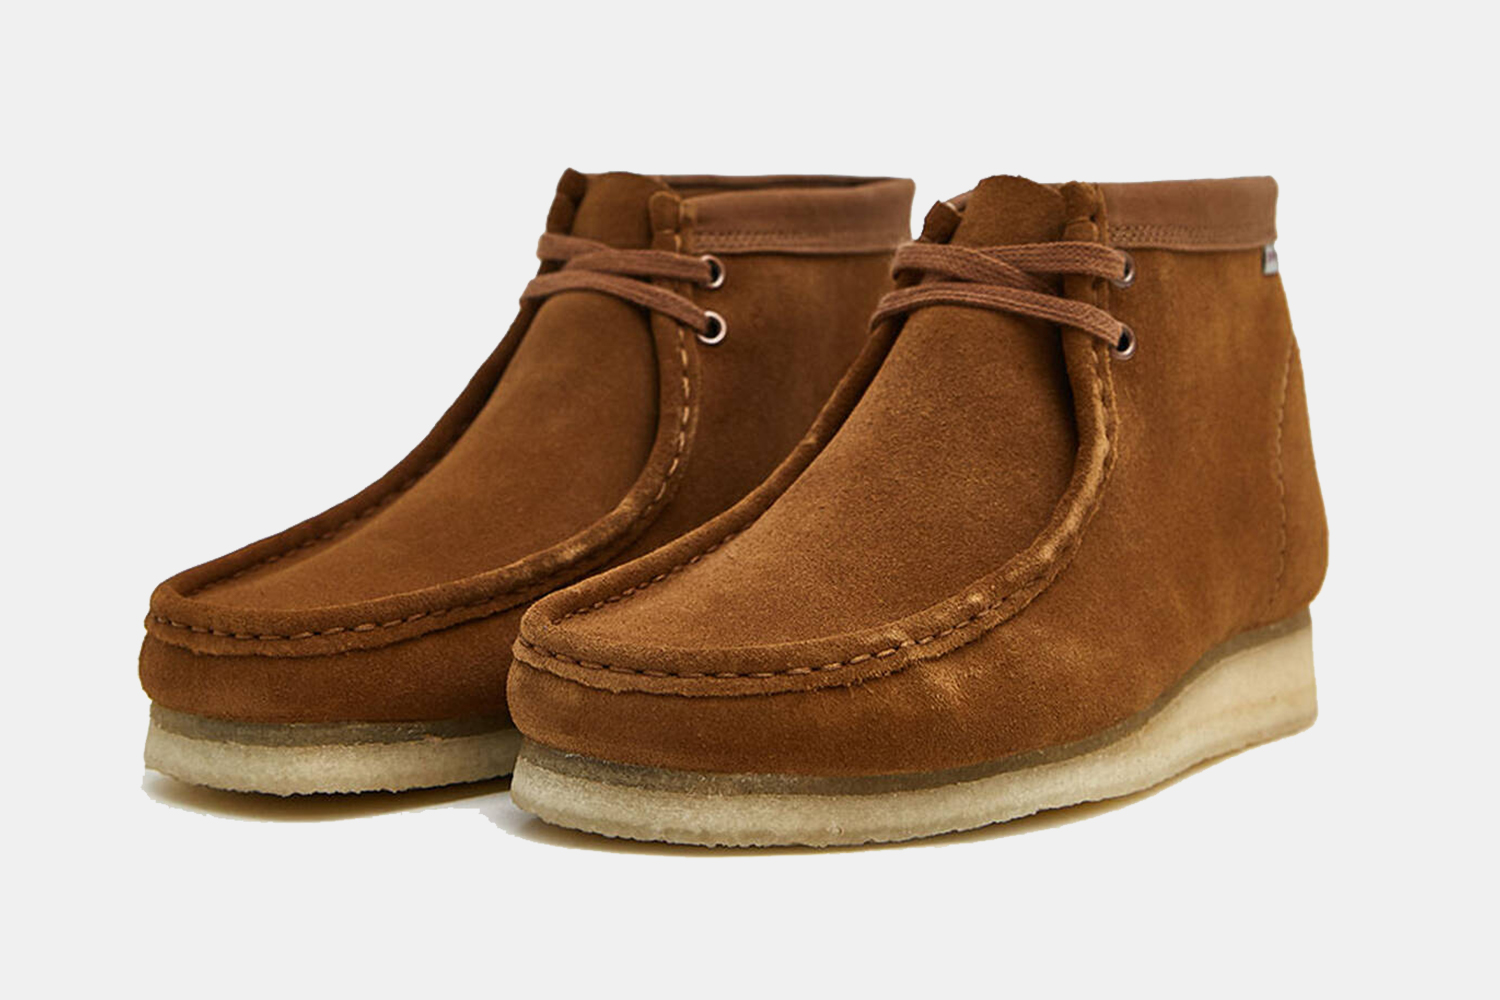 Carhartt WIP x Clarks Wallabee Boot